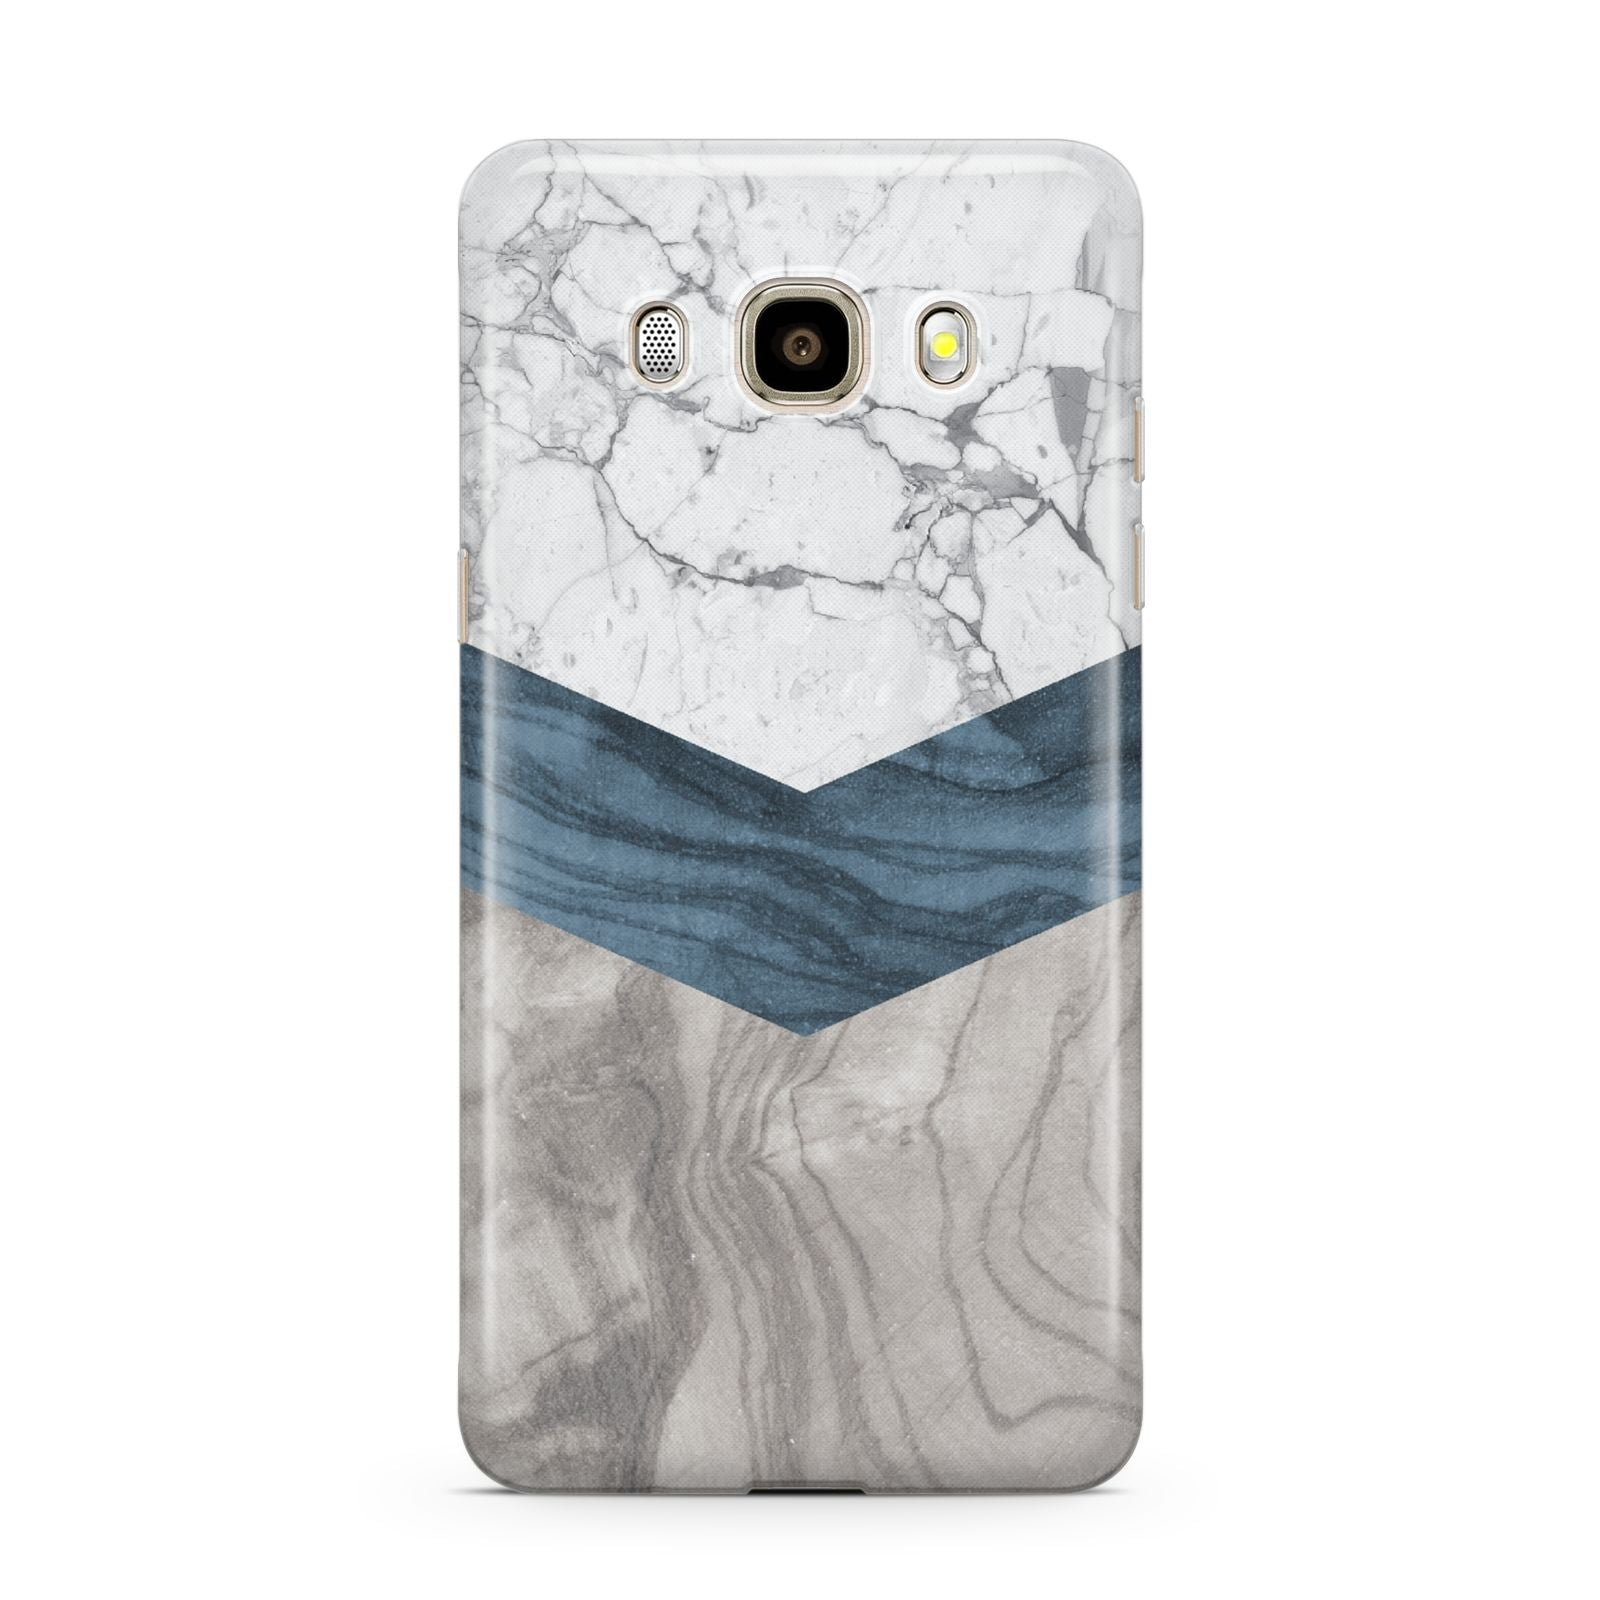 Marble Wood Geometric 8 Samsung Galaxy J7 2016 Case on gold phone